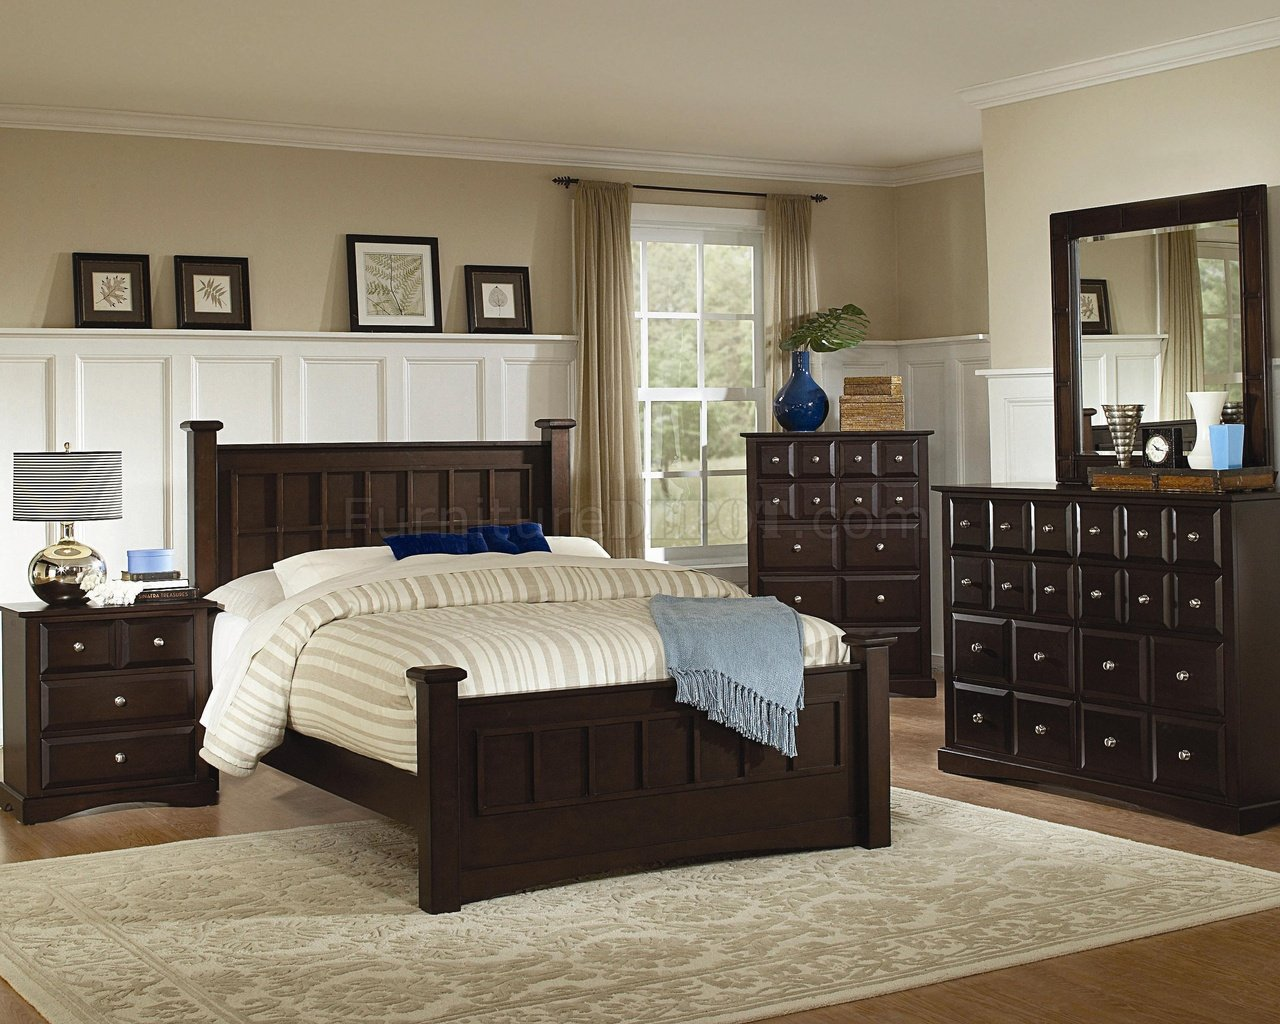 Harbor 201381 Bedroom in Cappuccino by Coaster w/Options